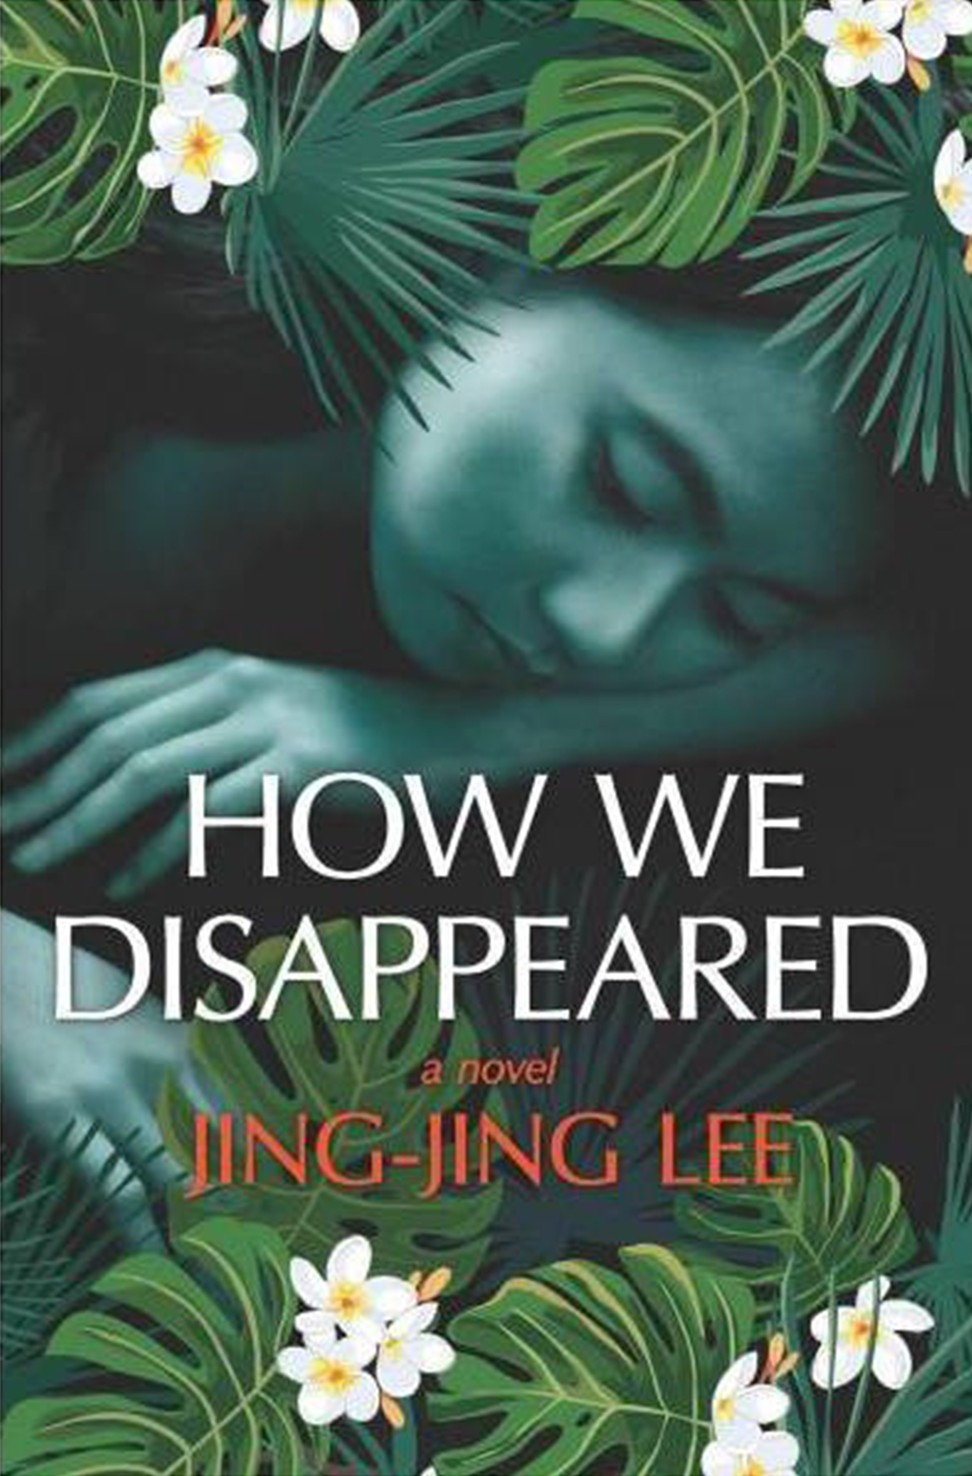 7415eabe1 How We Disappeared: Jing-Jing Lee's powerful tale of wartime Singapore and  the shame of silence | South China Morning Post